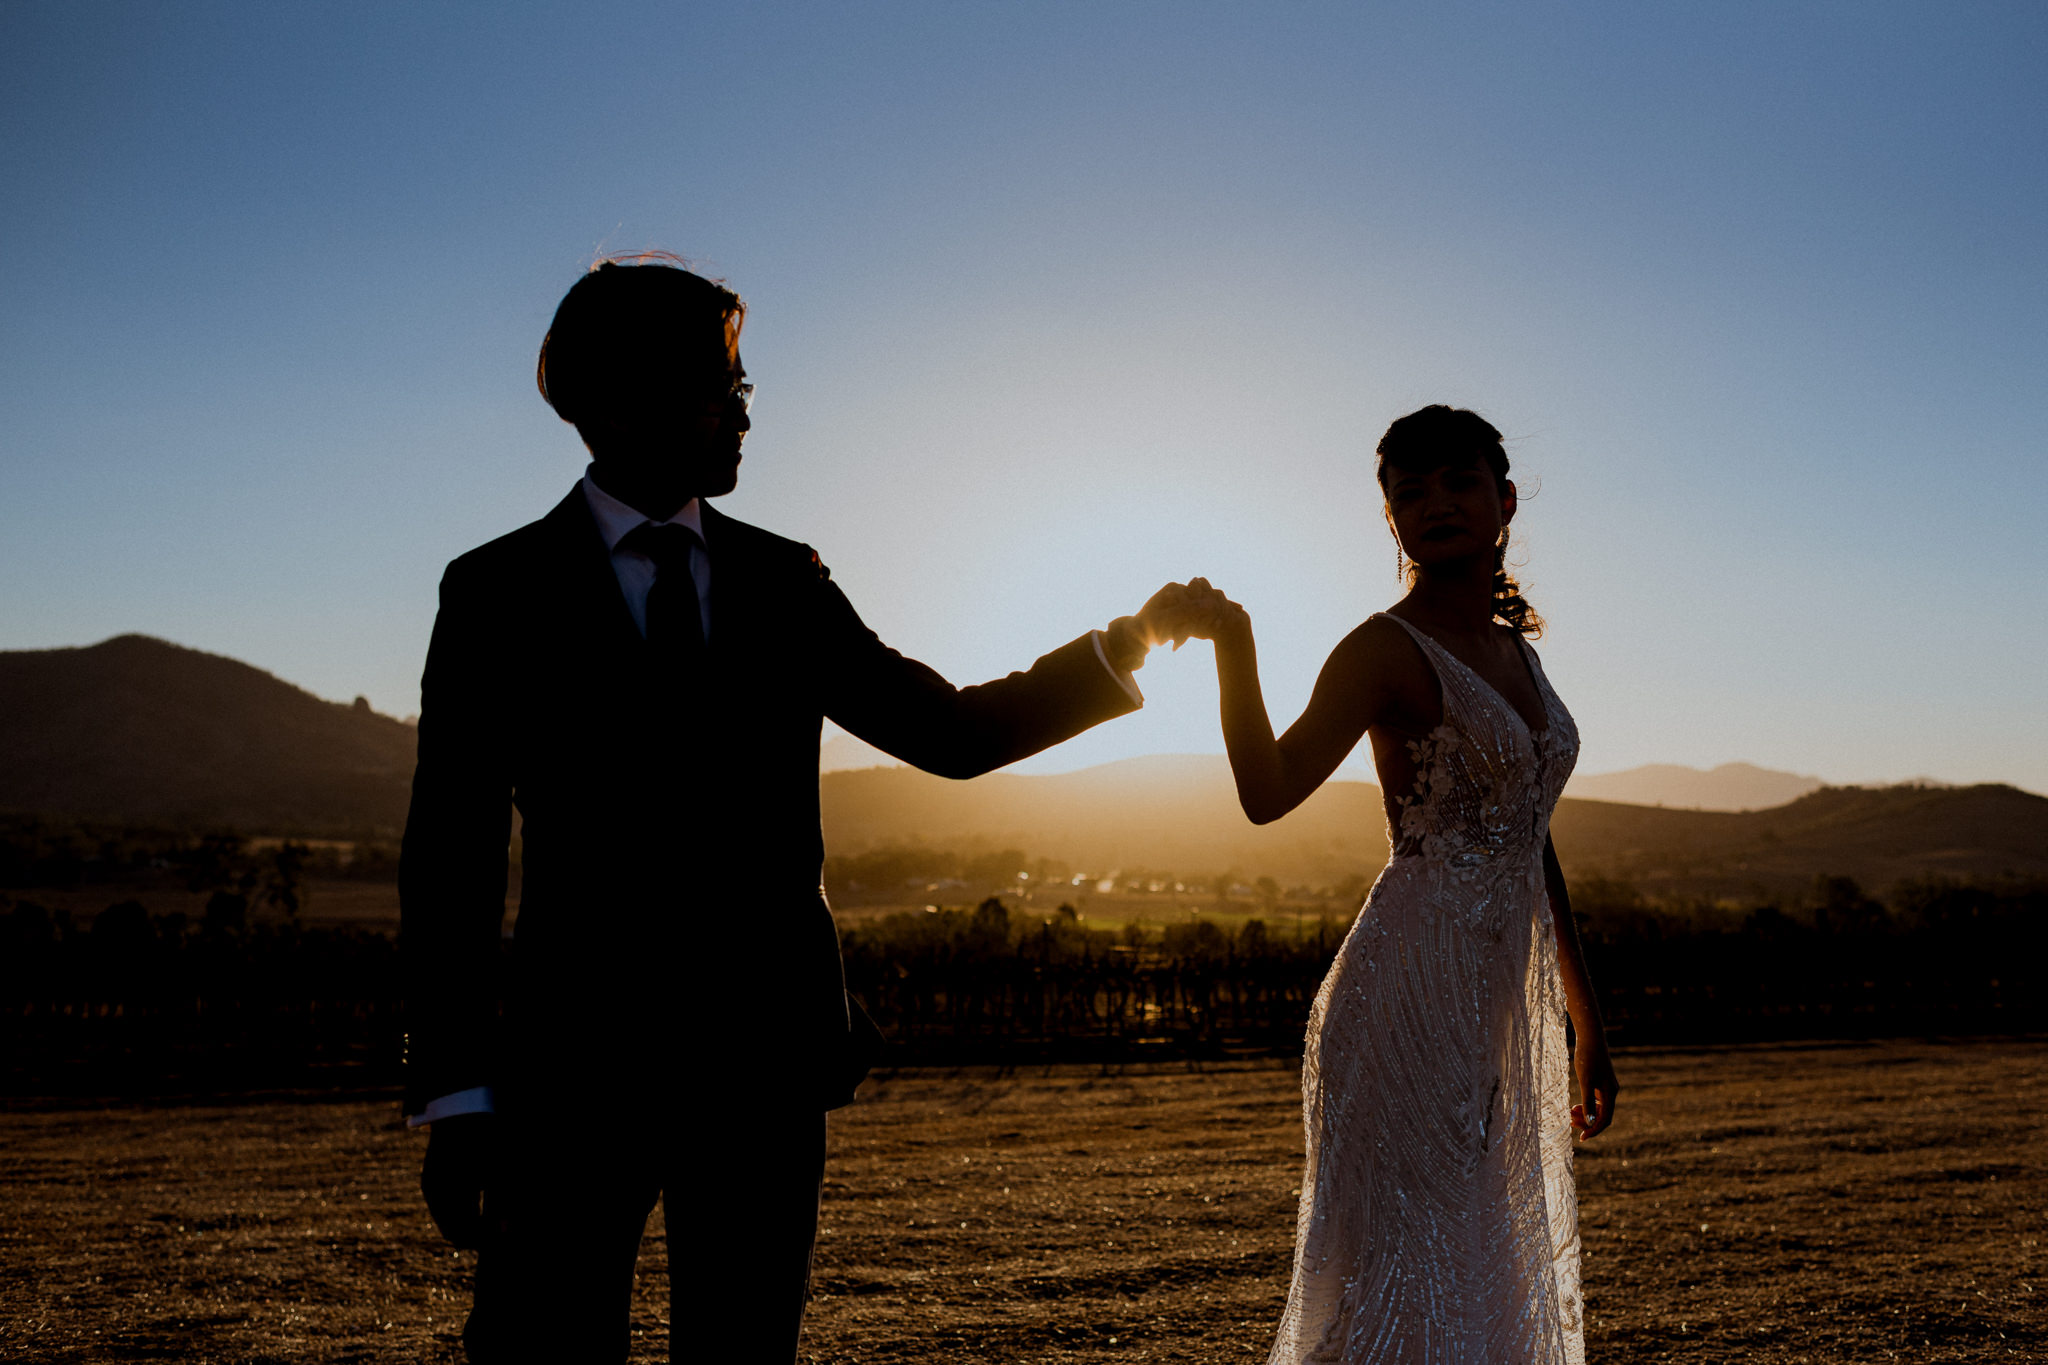 A couple hold hands, silhouetted against the setting afternoon sun